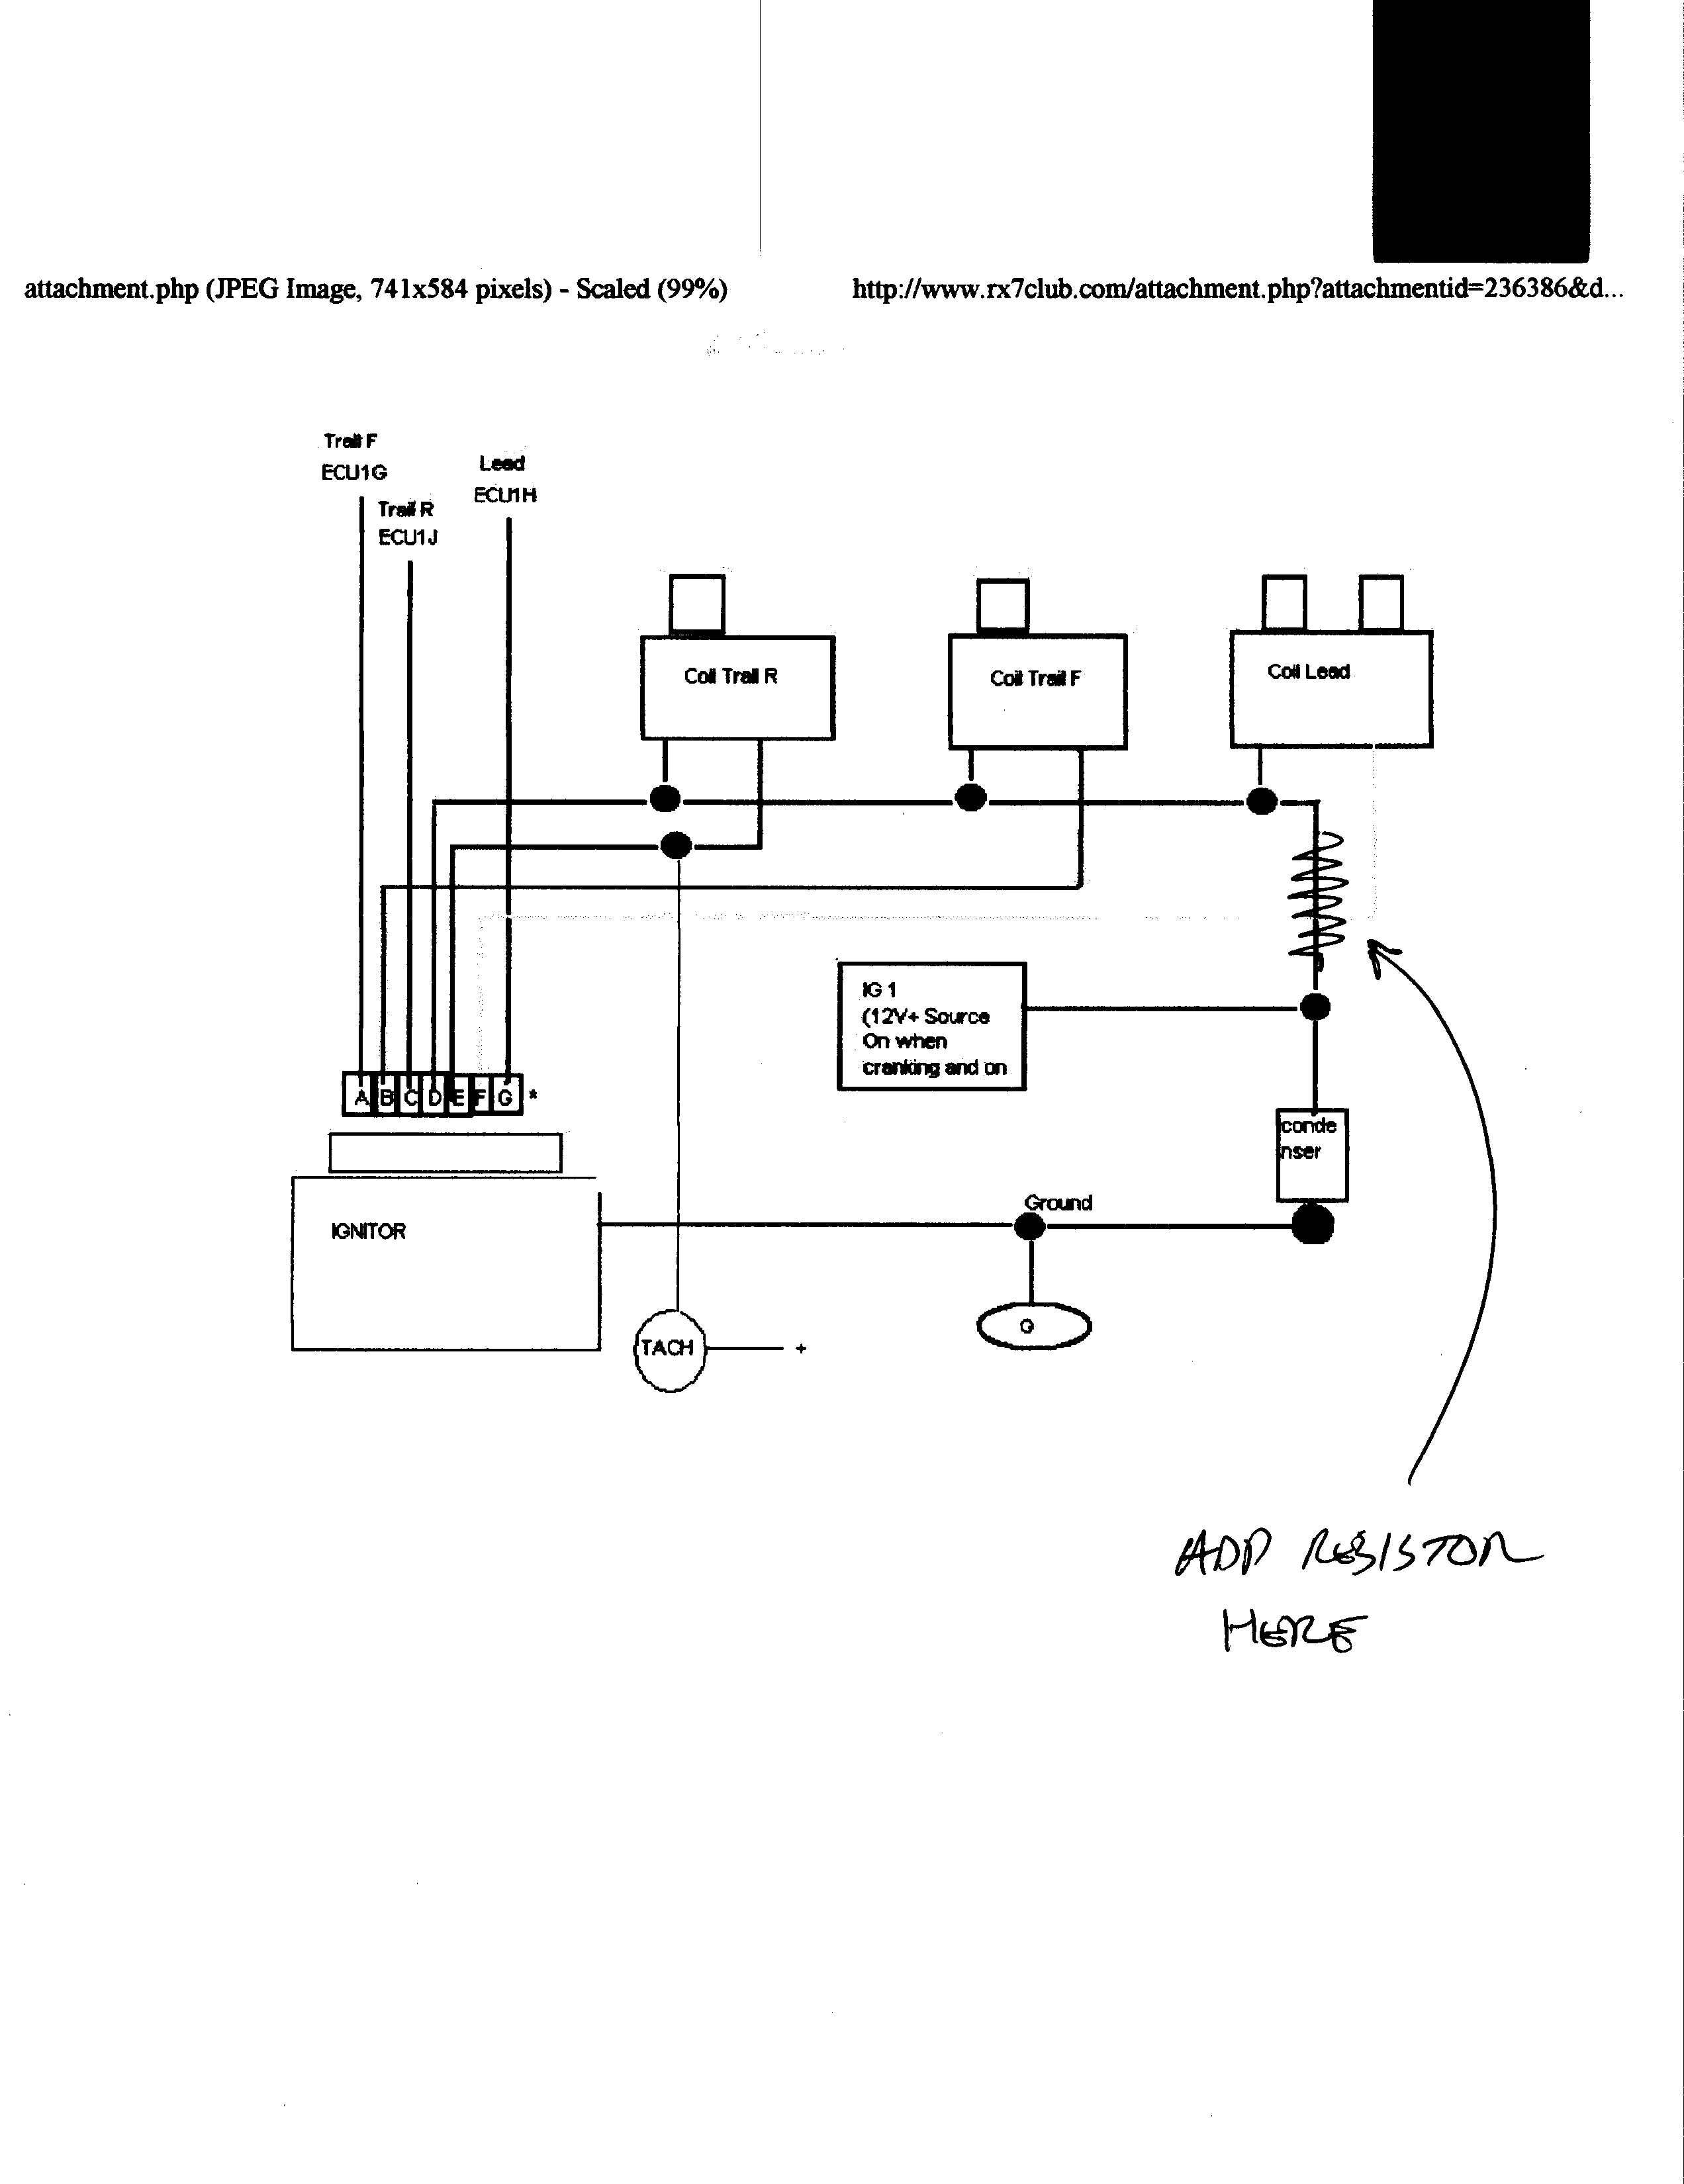 wiring diagram for ignition coil with points kubota starter solenoid fd help please rx7club mazda